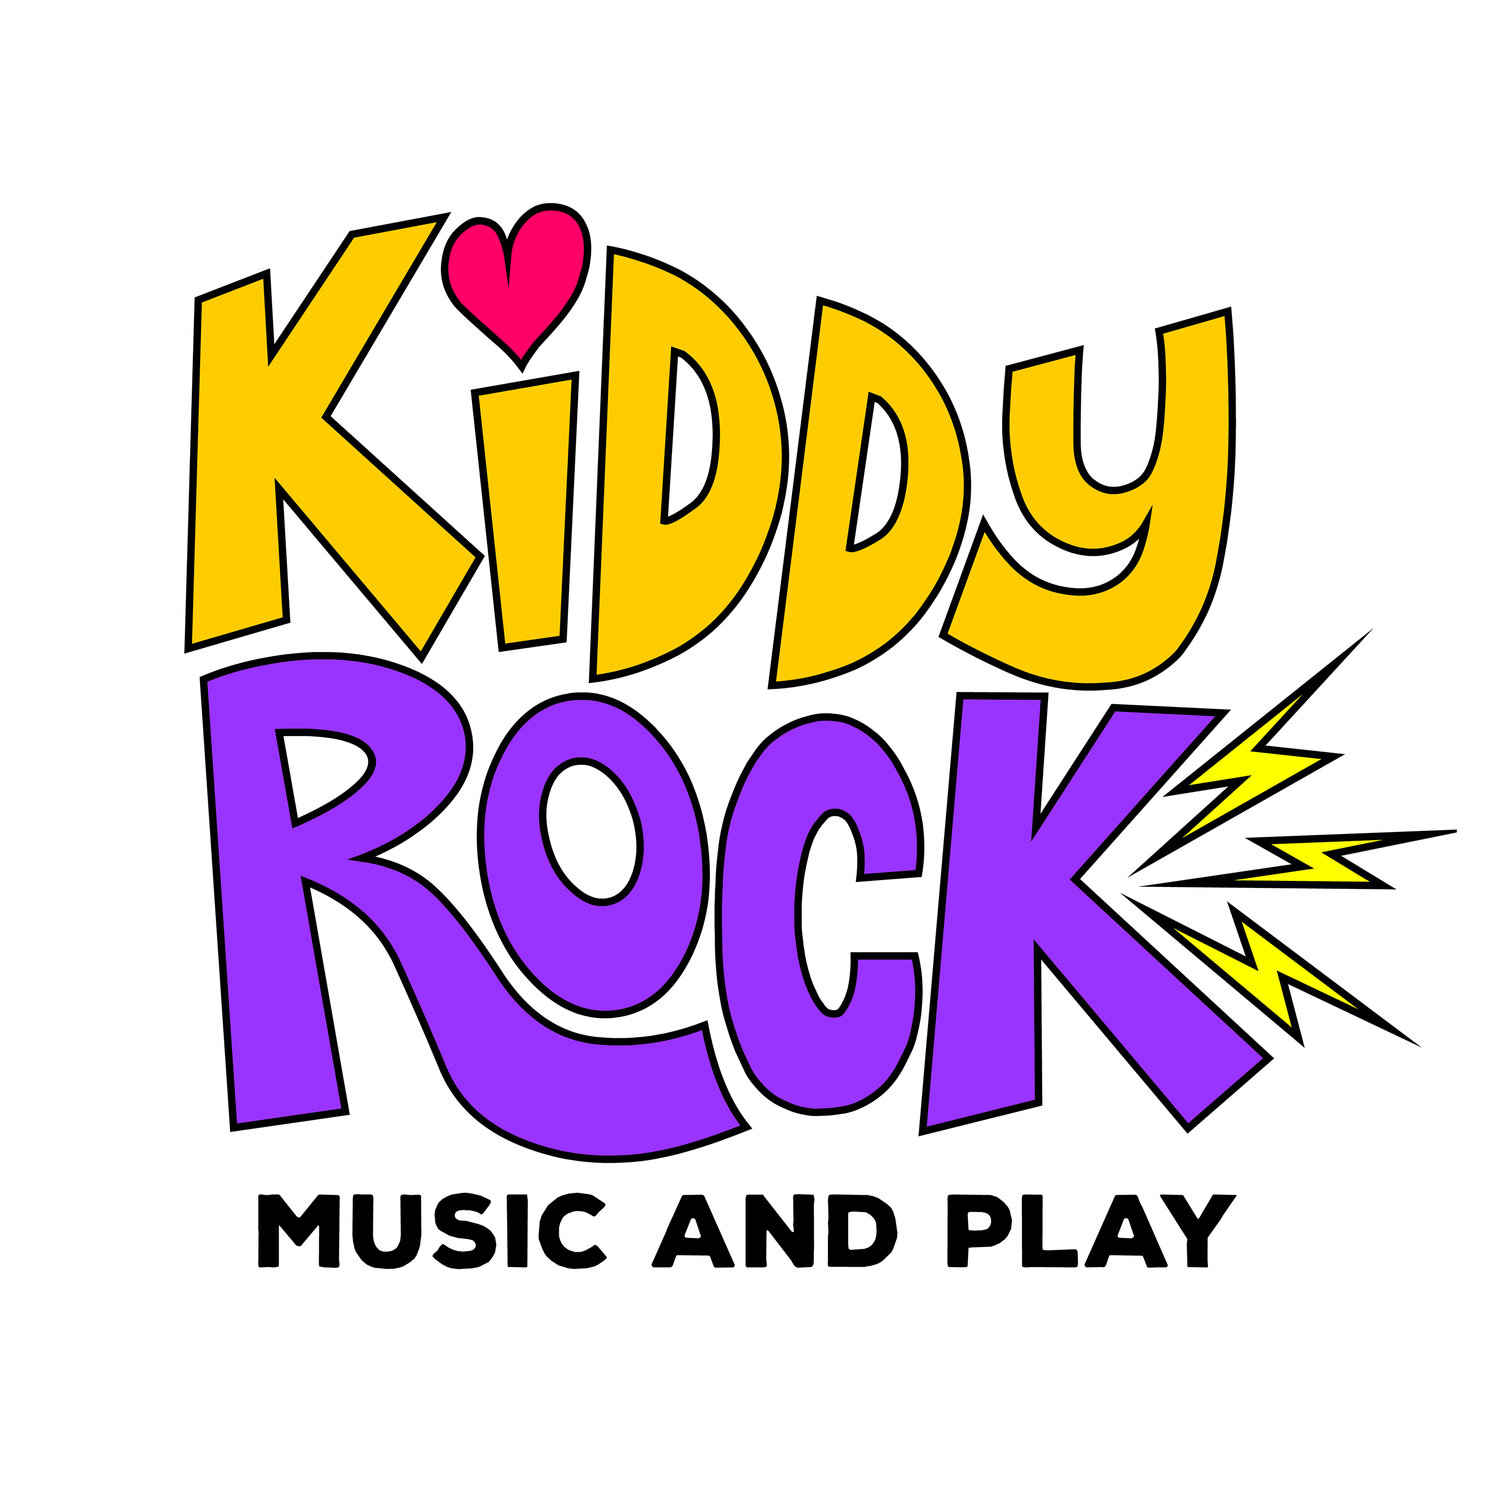 Kiddyrock Music and Play